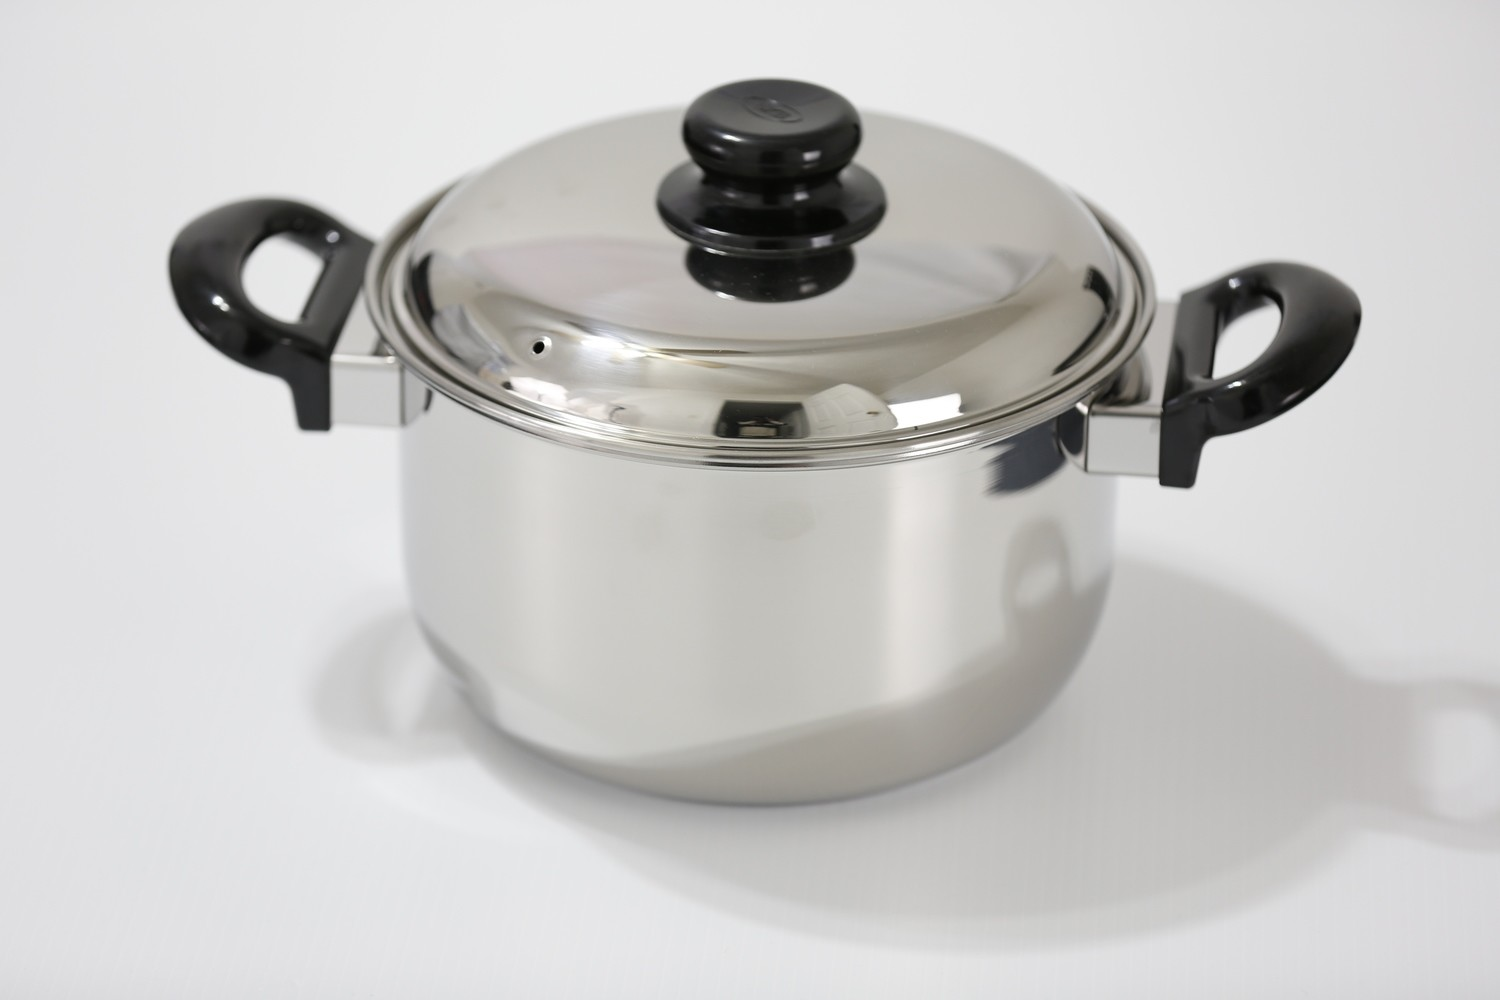 Stainless Steel Dutch Oven with cover and Stay Cool bakelite handle